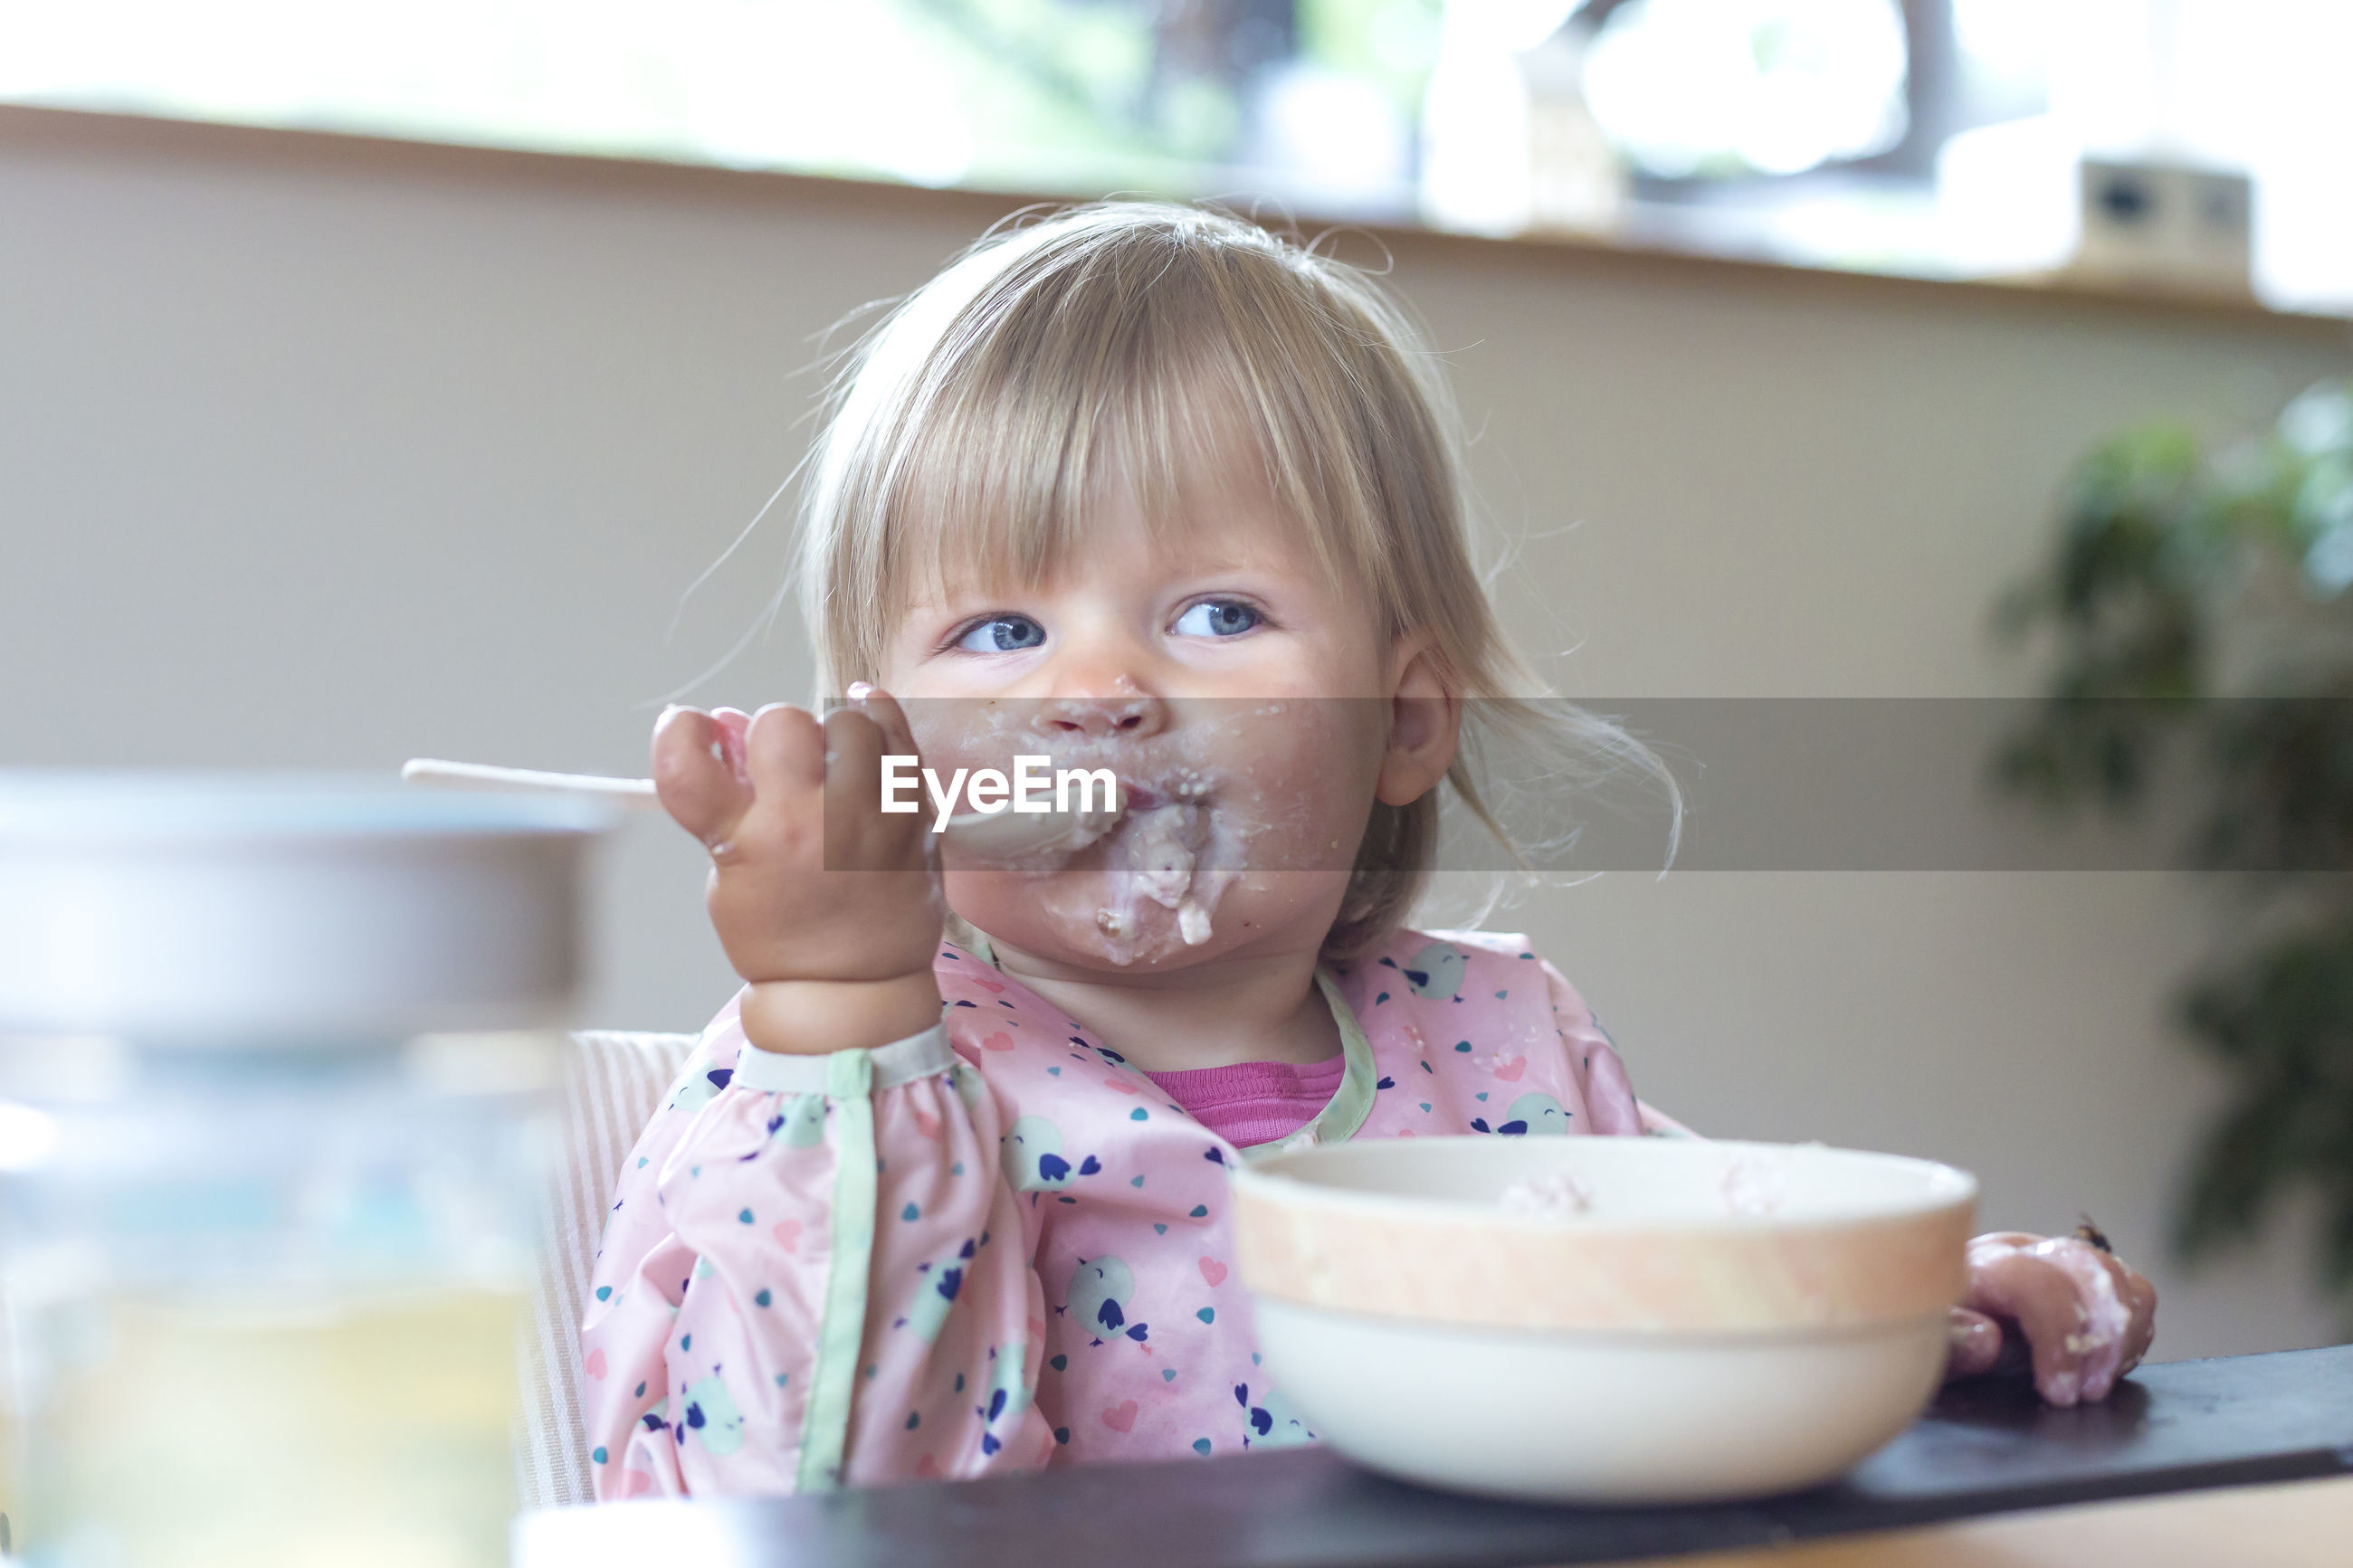 Cute girl eating ice cream at home